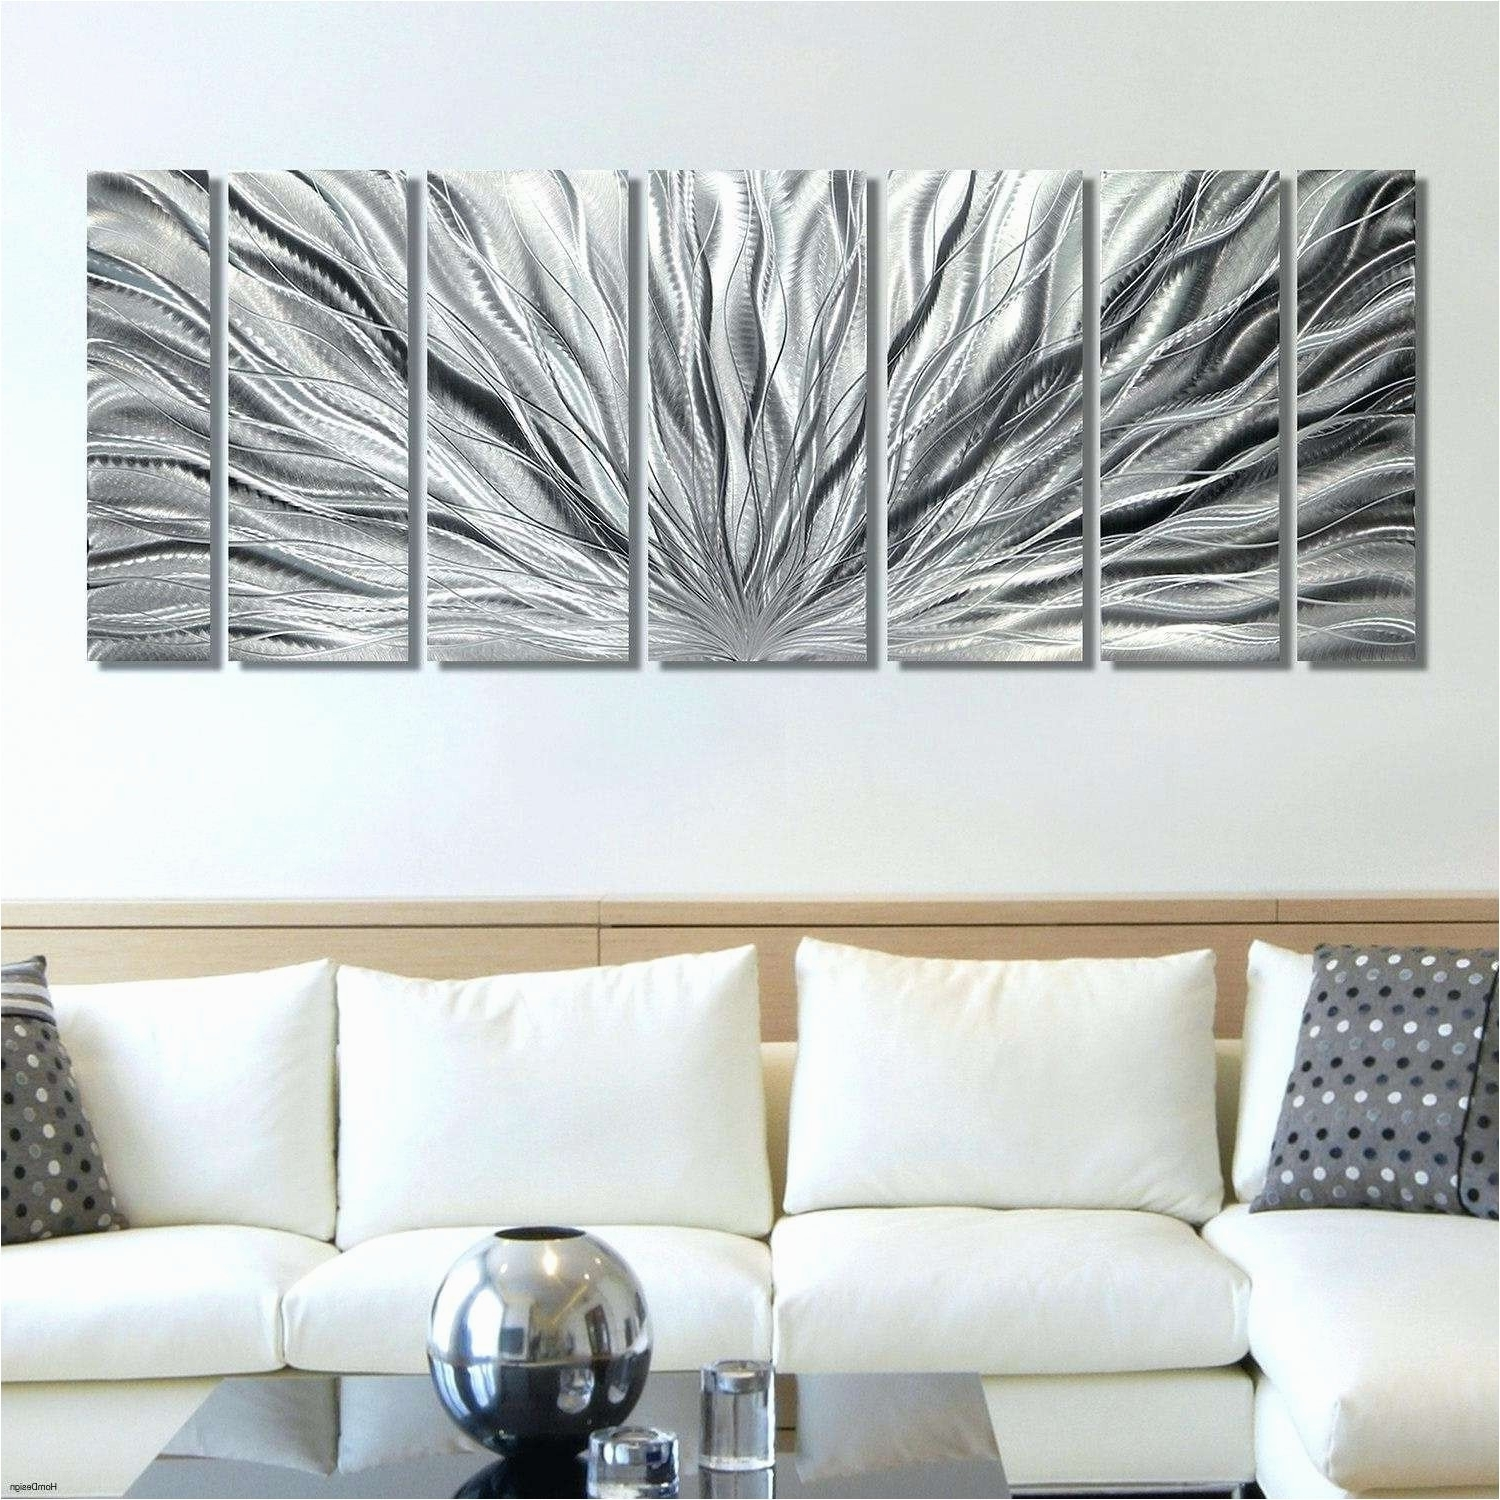 Most Recent Living Room Corner Wall Decor Luxury Wall Art For Living Room Ideas In Corner Wall Art (View 7 of 15)